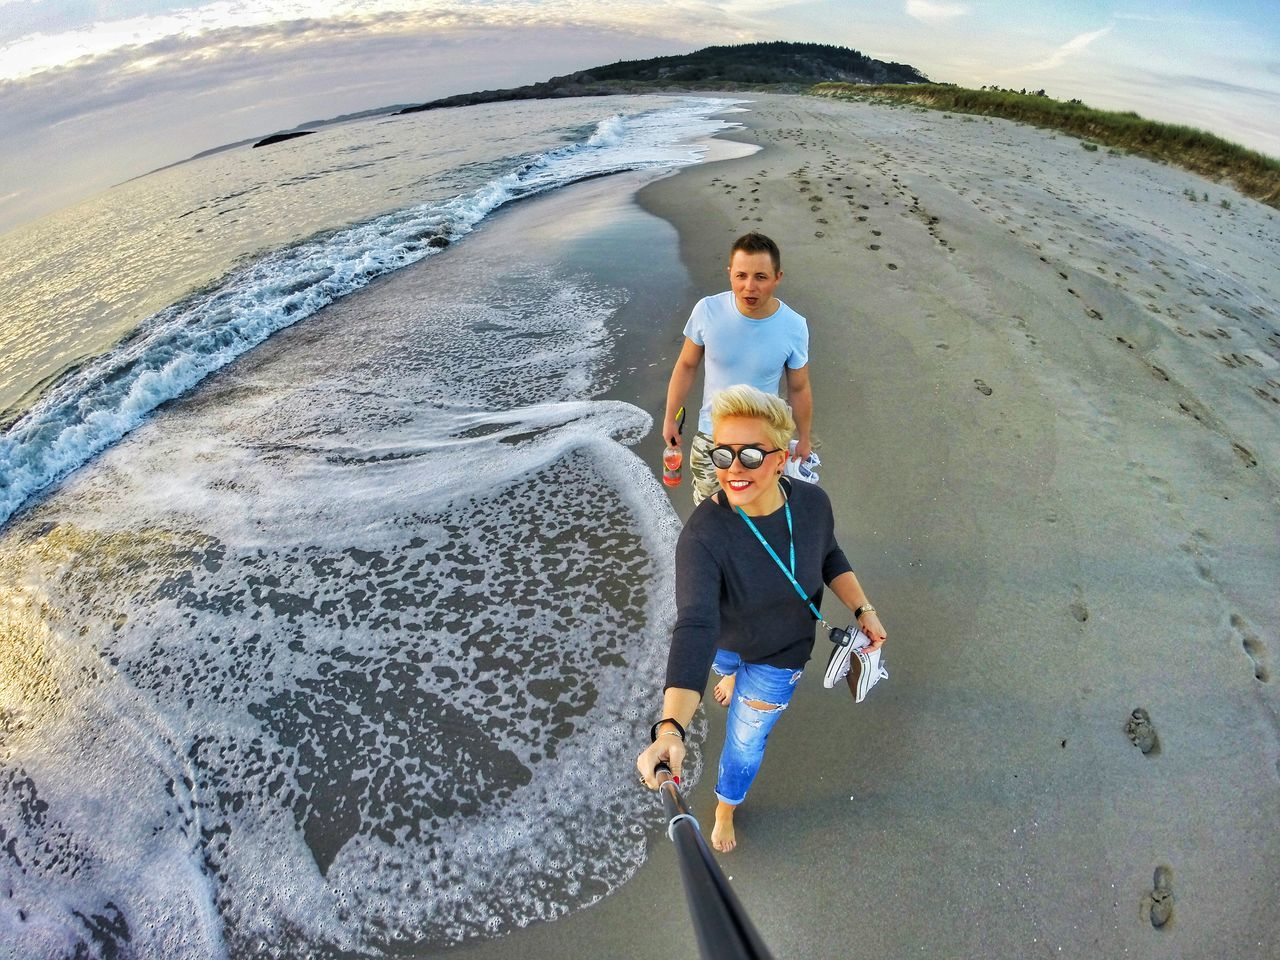 People Outdoors Vitality Happiness Polishpeople Lovers Together Everywhere We Go Is A Phootoshoot Eyemphotography Goprophotography Traveladdict NorwayTourism Gopro Norwaynature Beachtime Beachlovers Lovelifelaugh